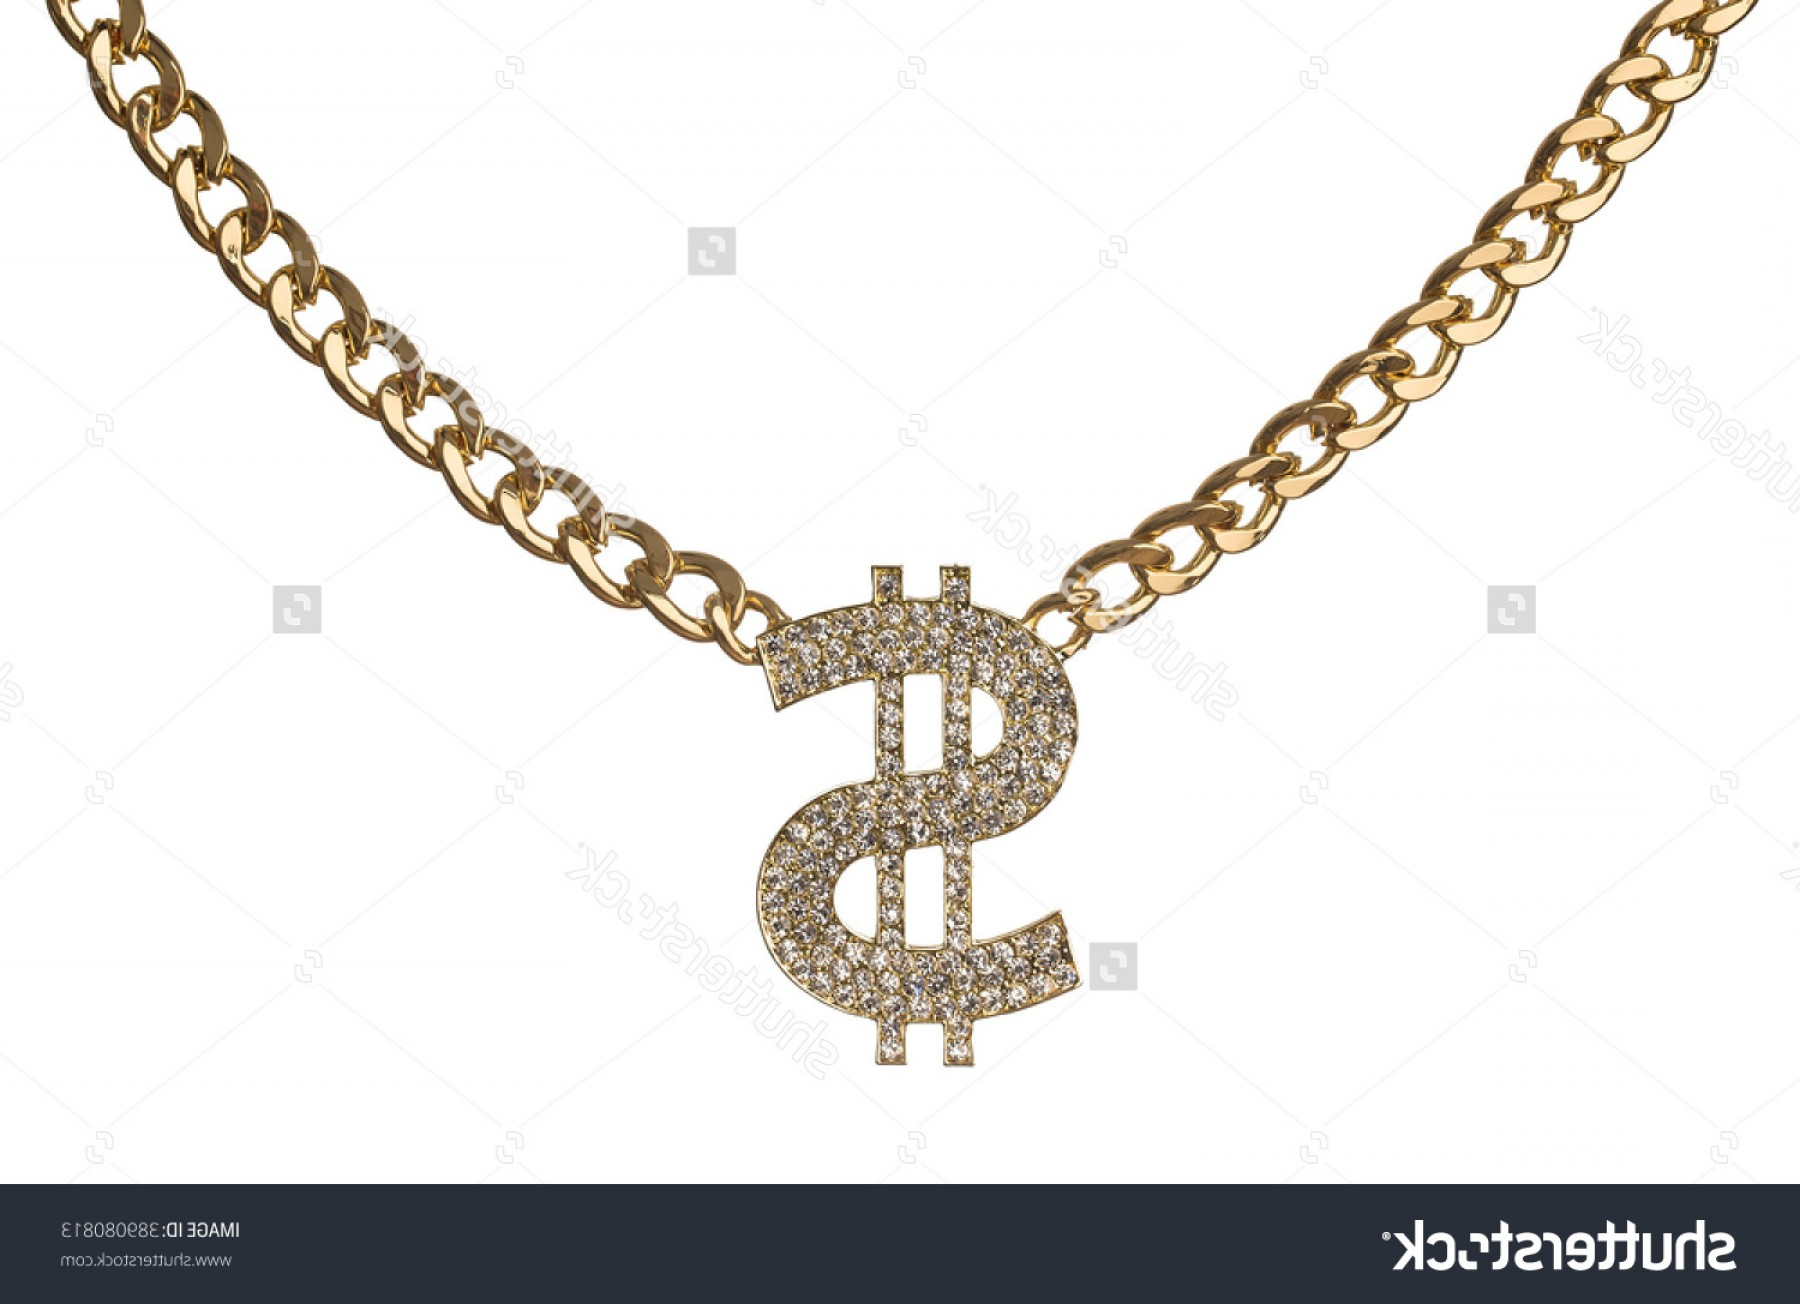 Diamond clipart diamond necklace Money necklace Gold collection Clipart